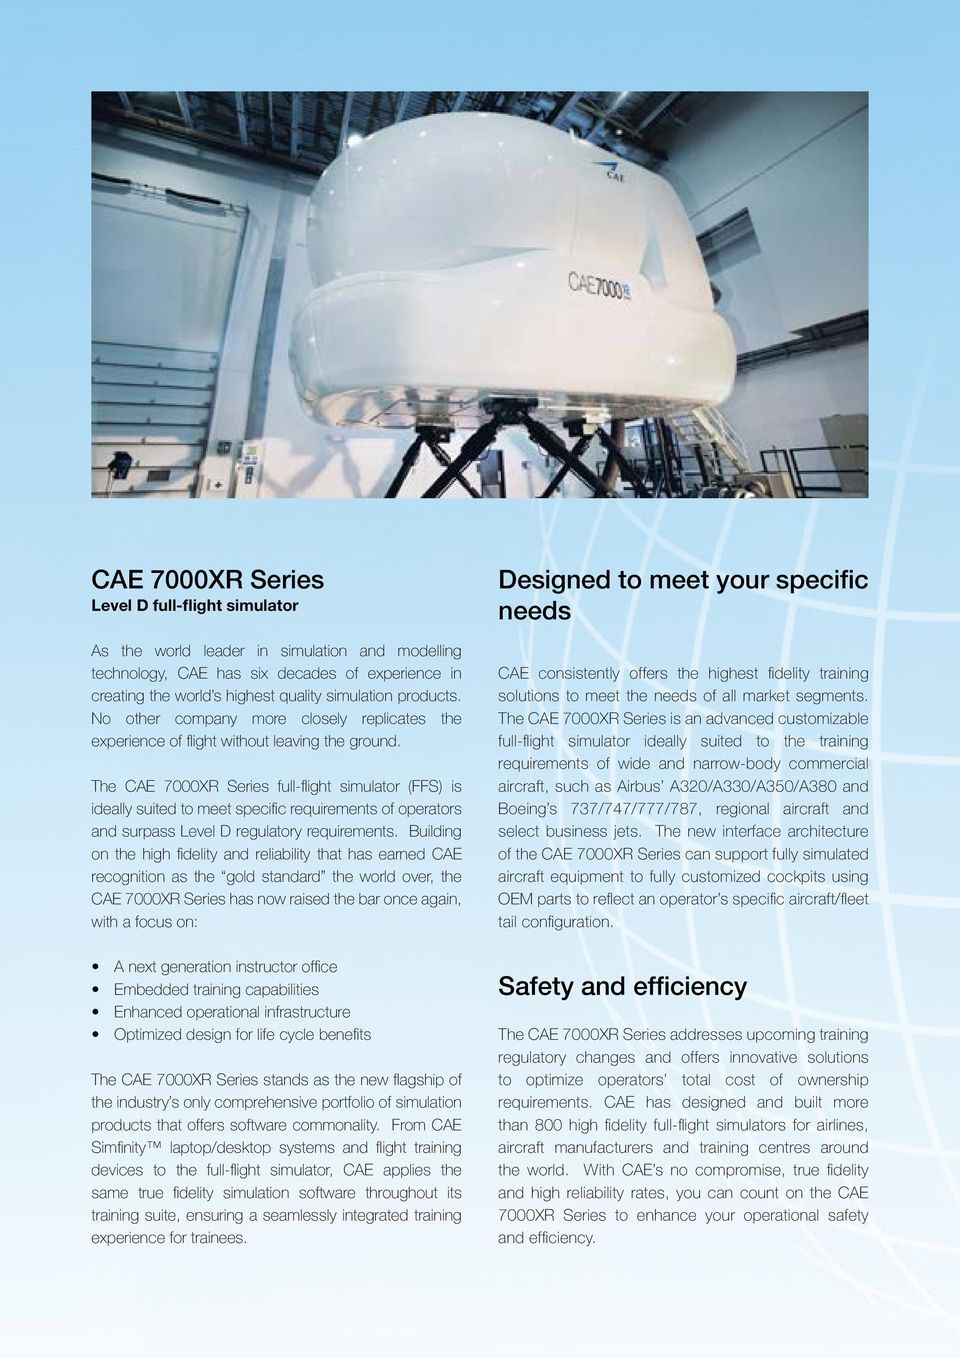 The CAE 7000XR Series full-flight simulator (FFS) is ideally suited to meet specific requirements of operators and surpass Level D regulatory requirements.